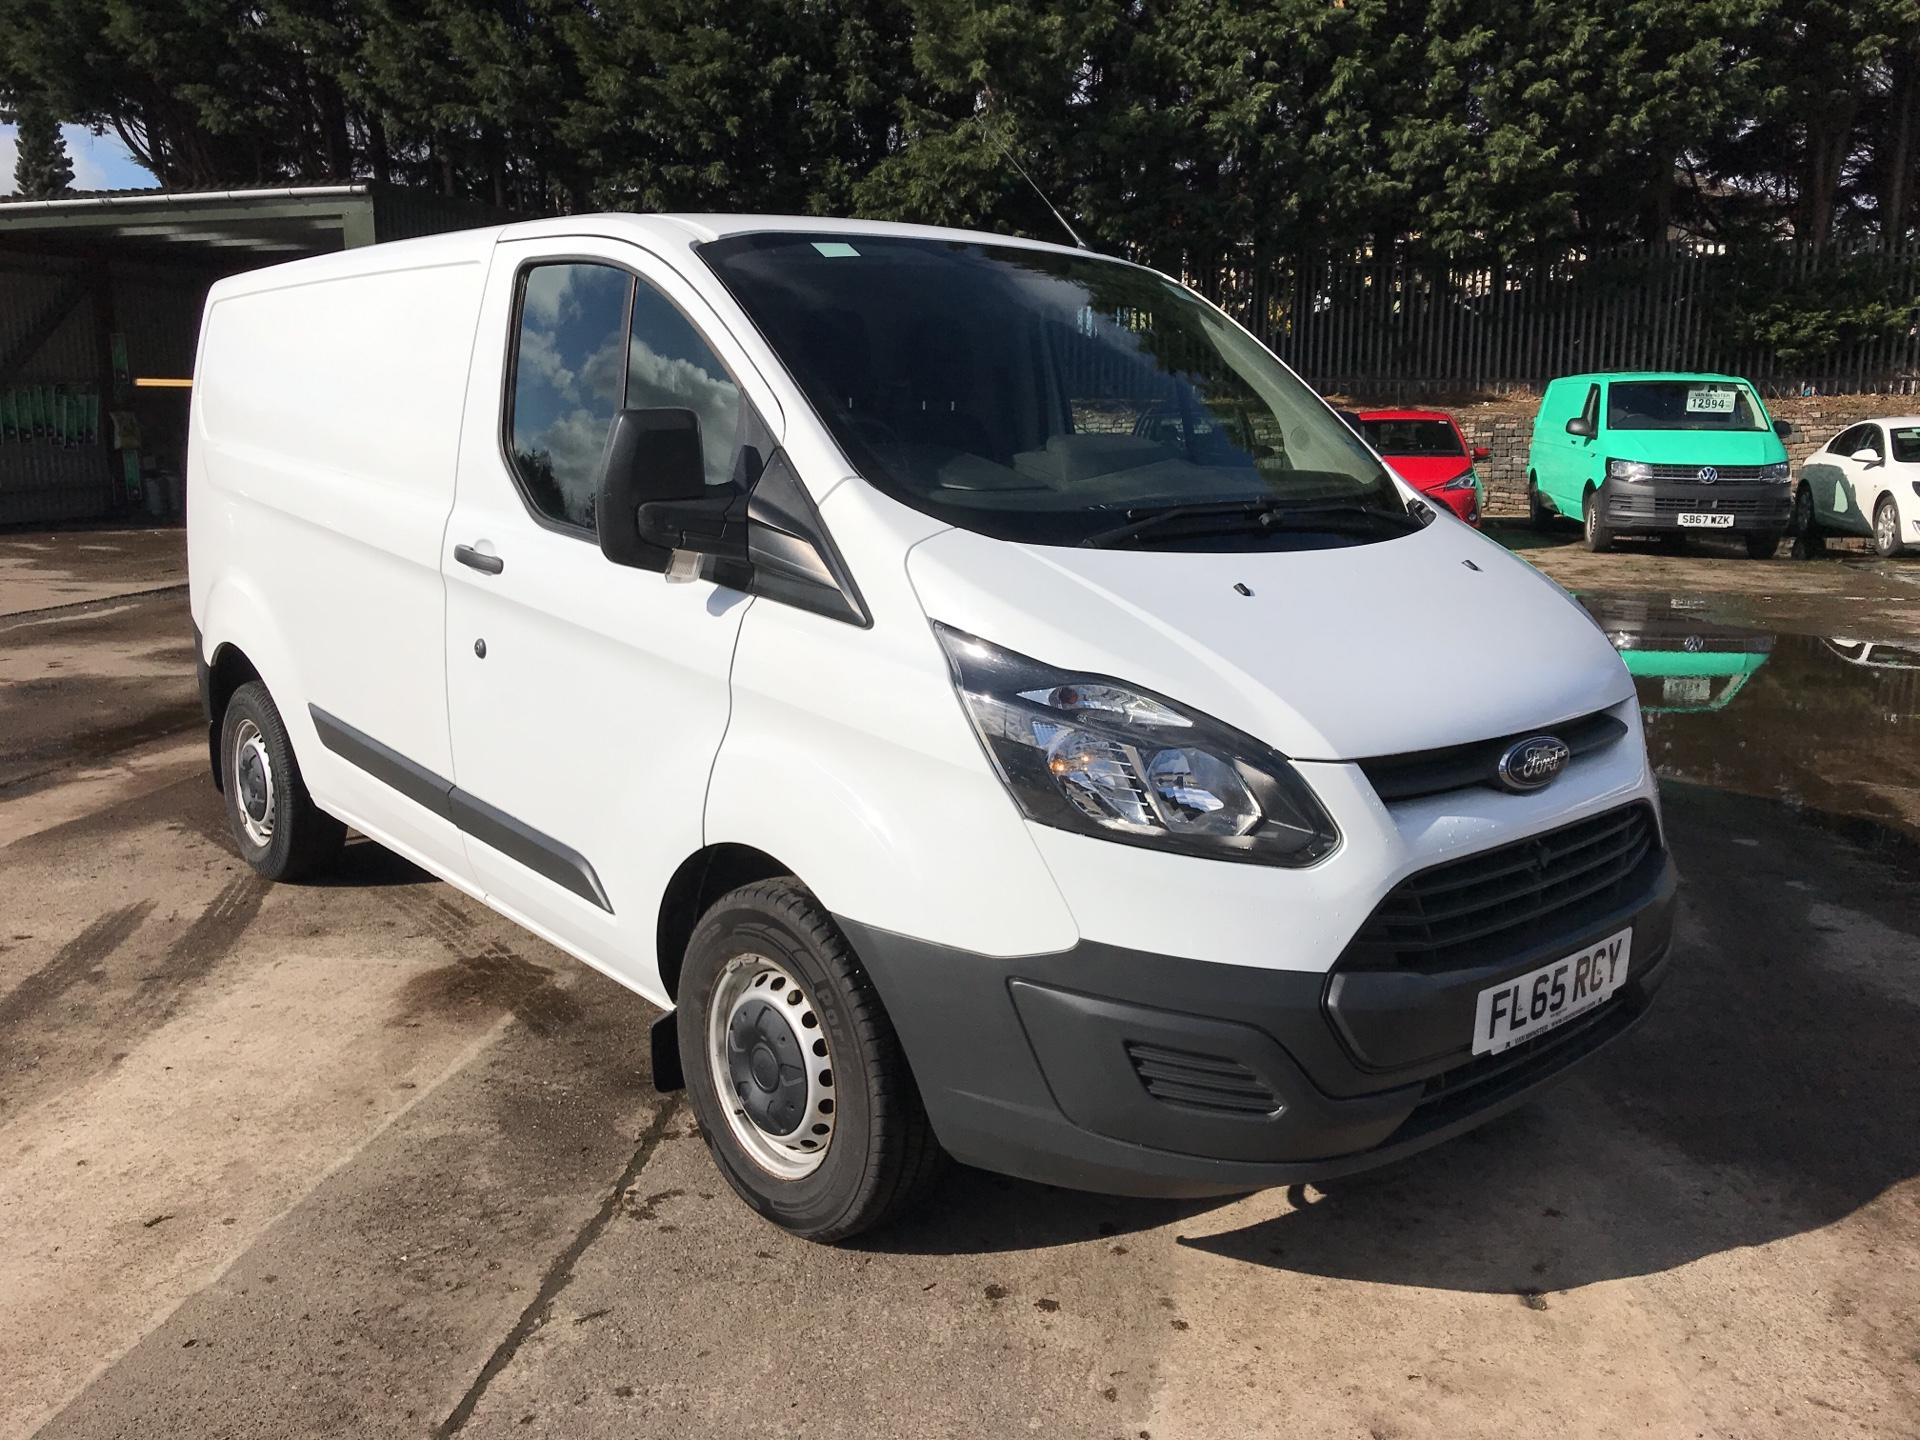 2015 Ford Transit Custom 290 L1 DIESEL FWD 2.2 TDCI 100PS LOW ROOF VAN EURO 5 (FL65RCY)